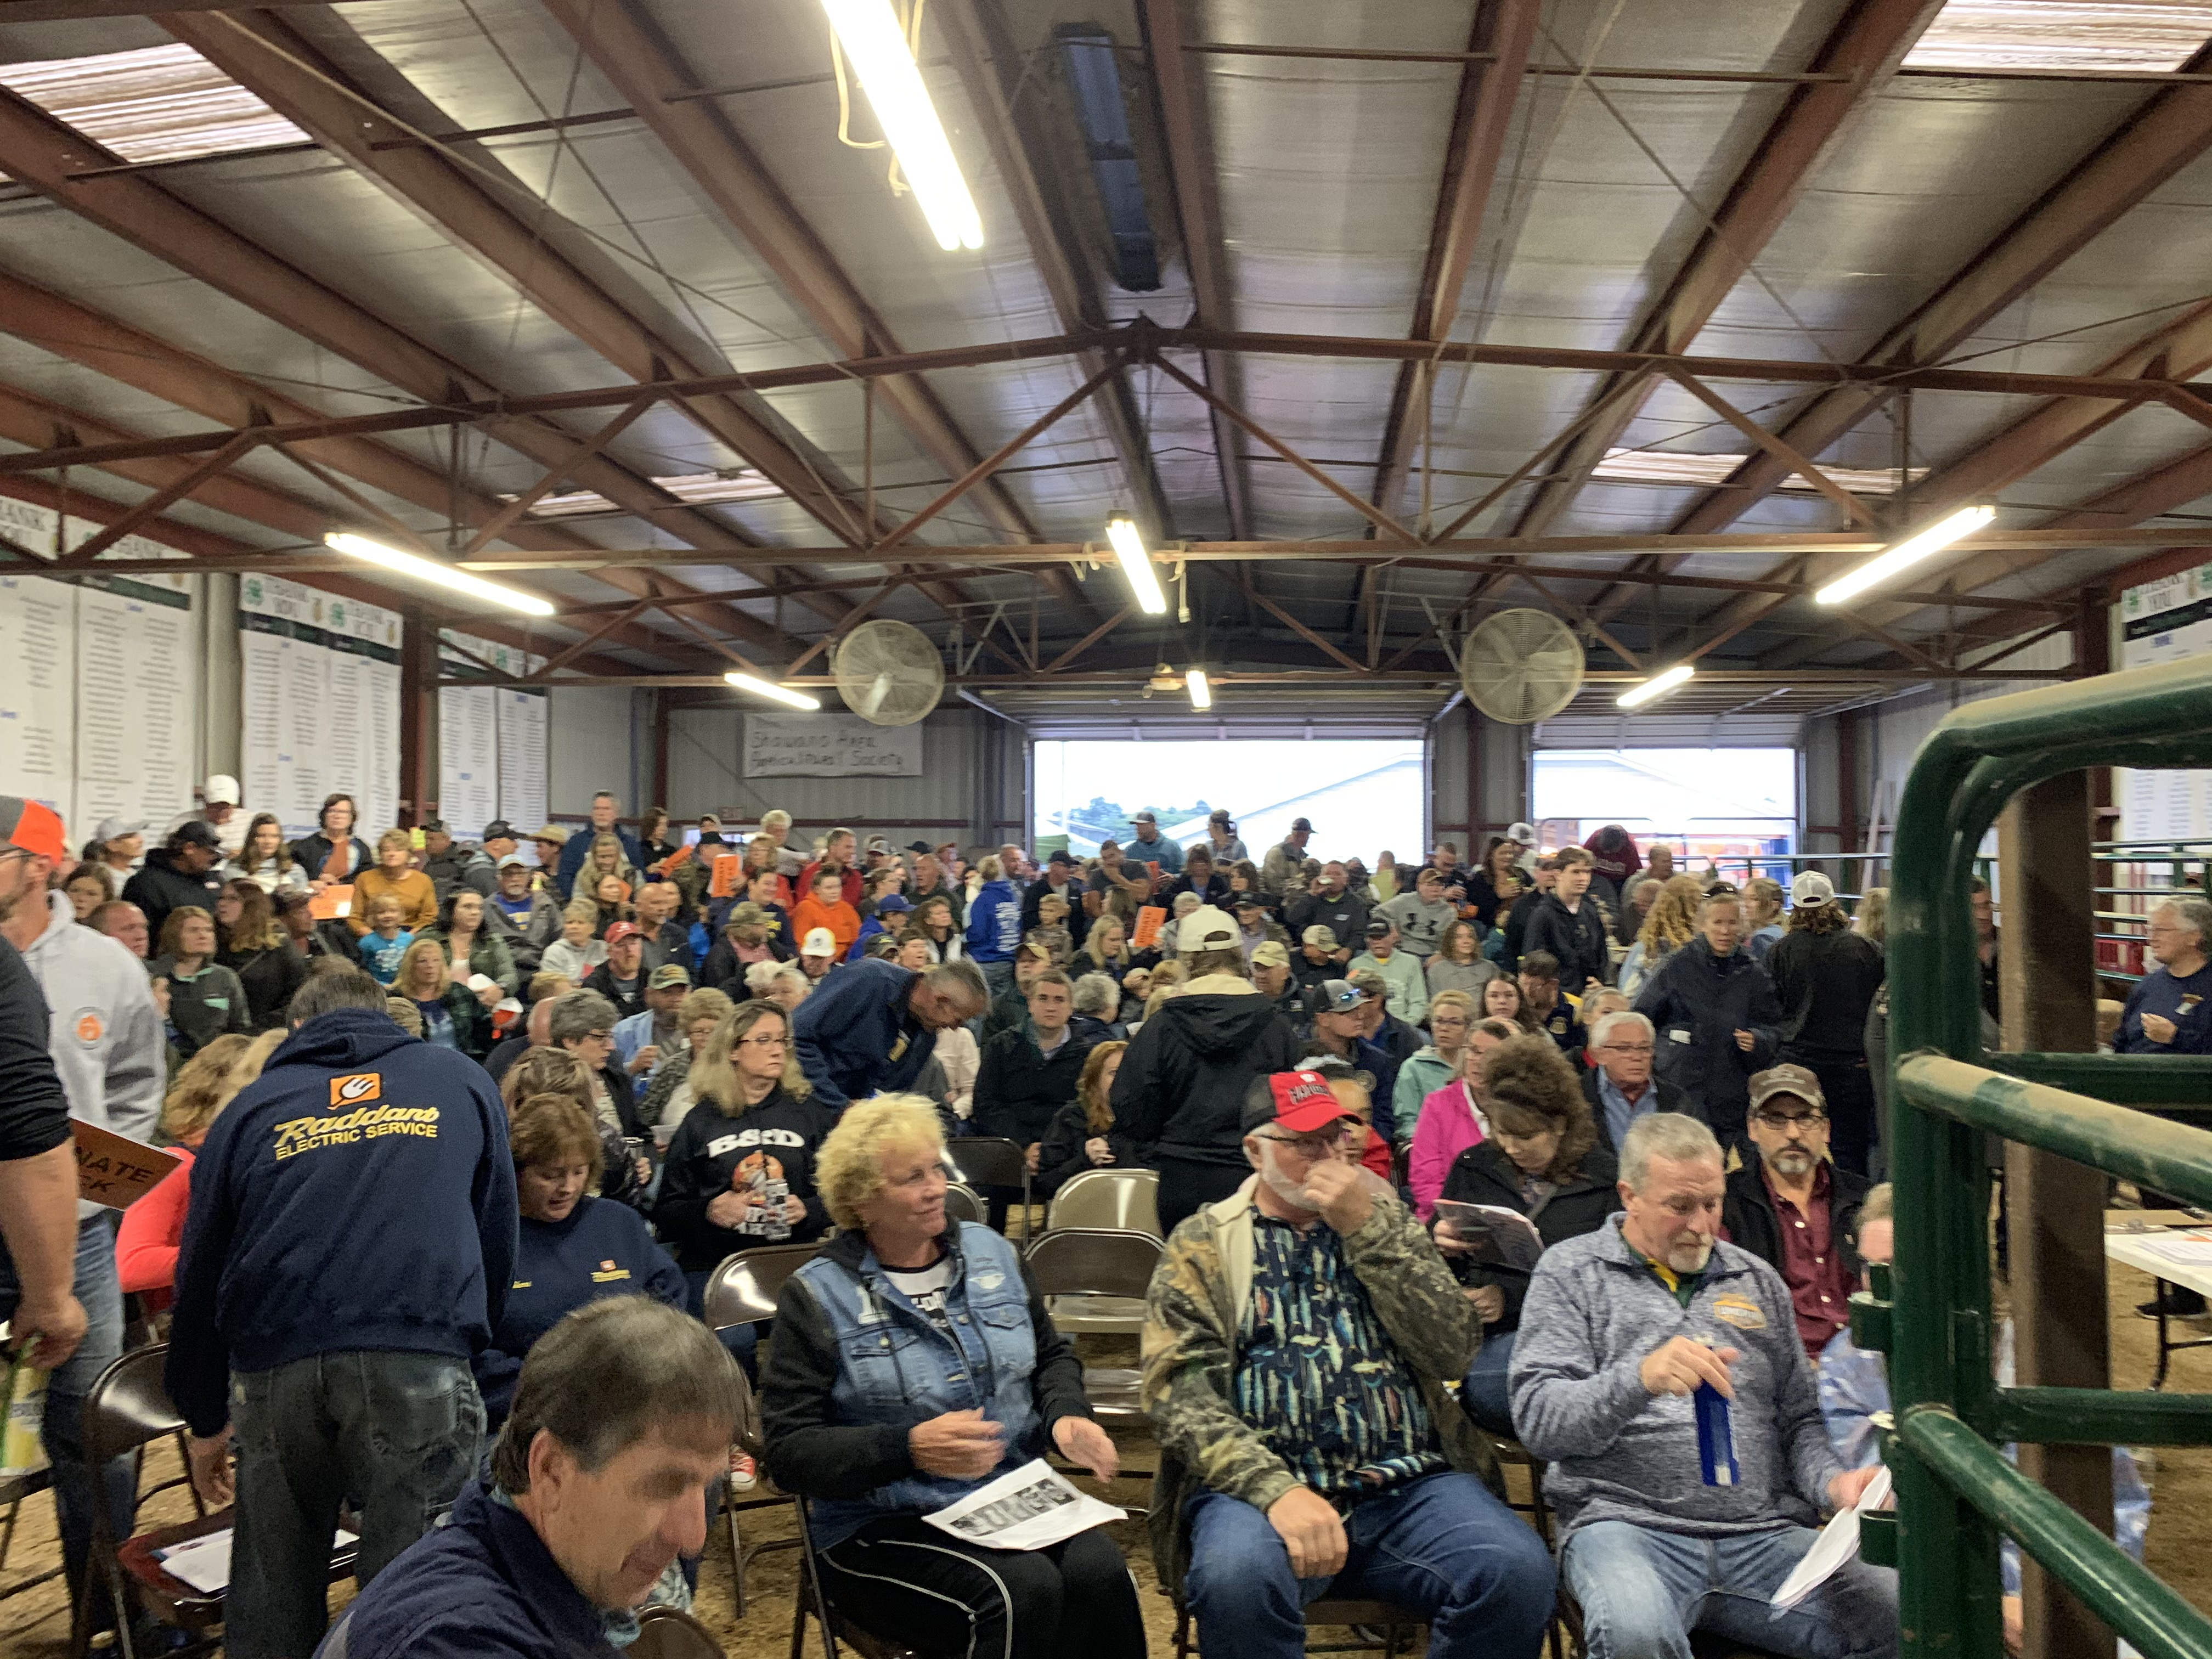 The Coliseum was packed with visitors that wanted to bid on livestock at the Shawano County Fair during the livestock auction on Sept. 3.Luke Reimer | NEW Media